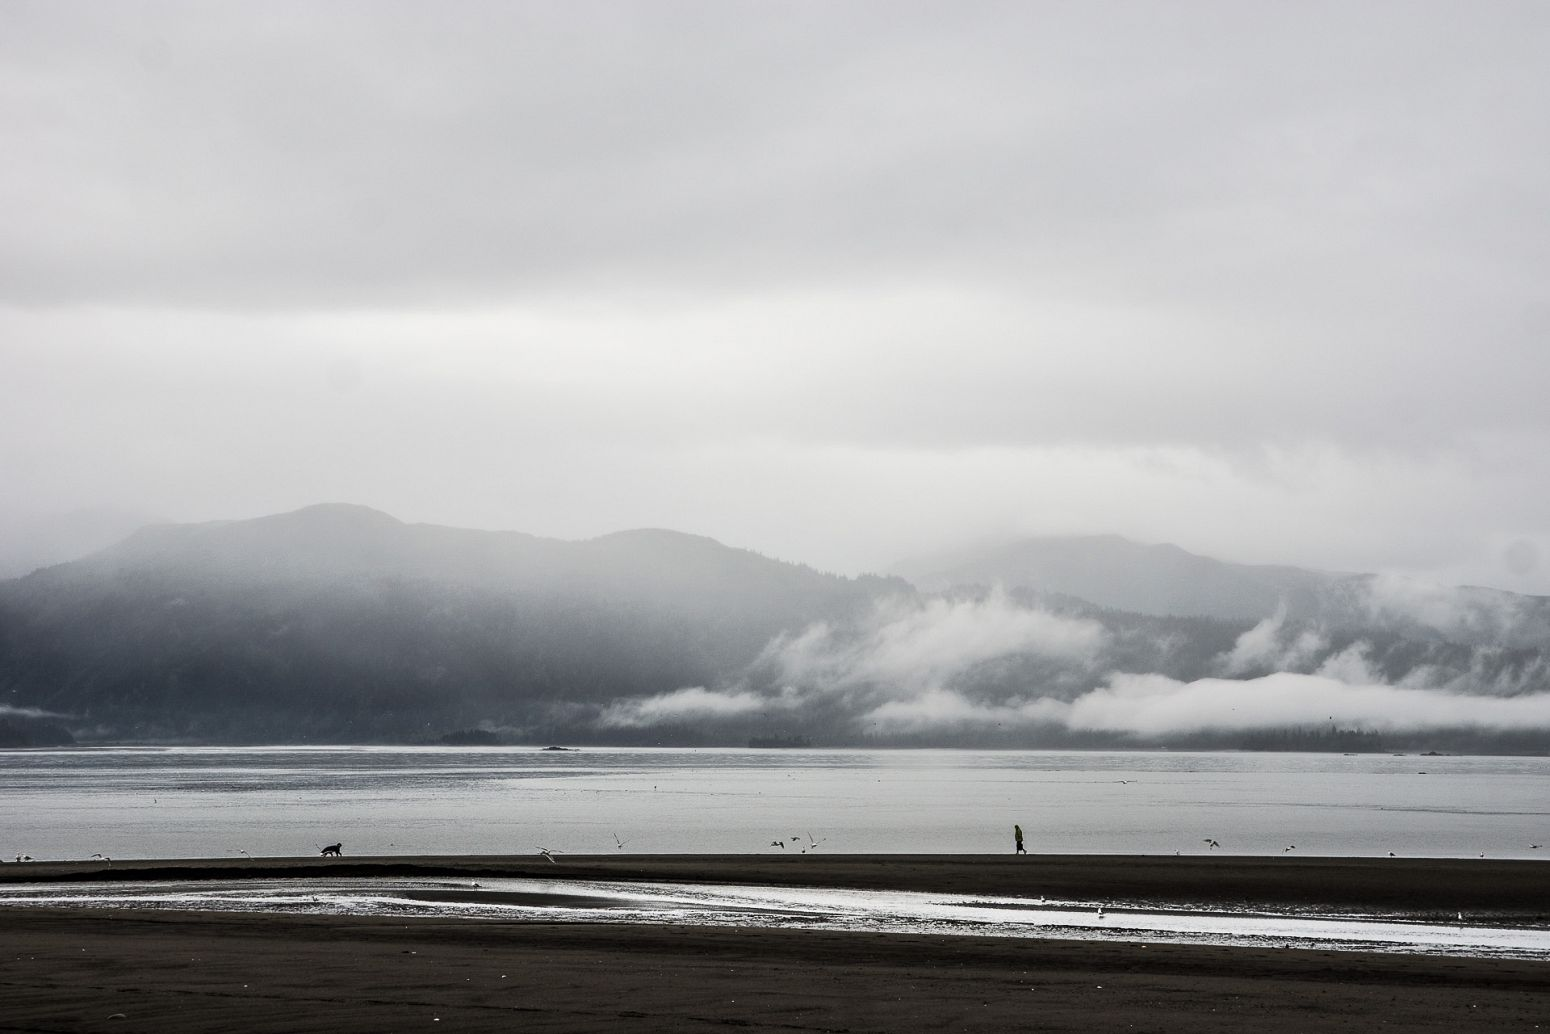 Cloudy weather in Homer, Alaska, USA